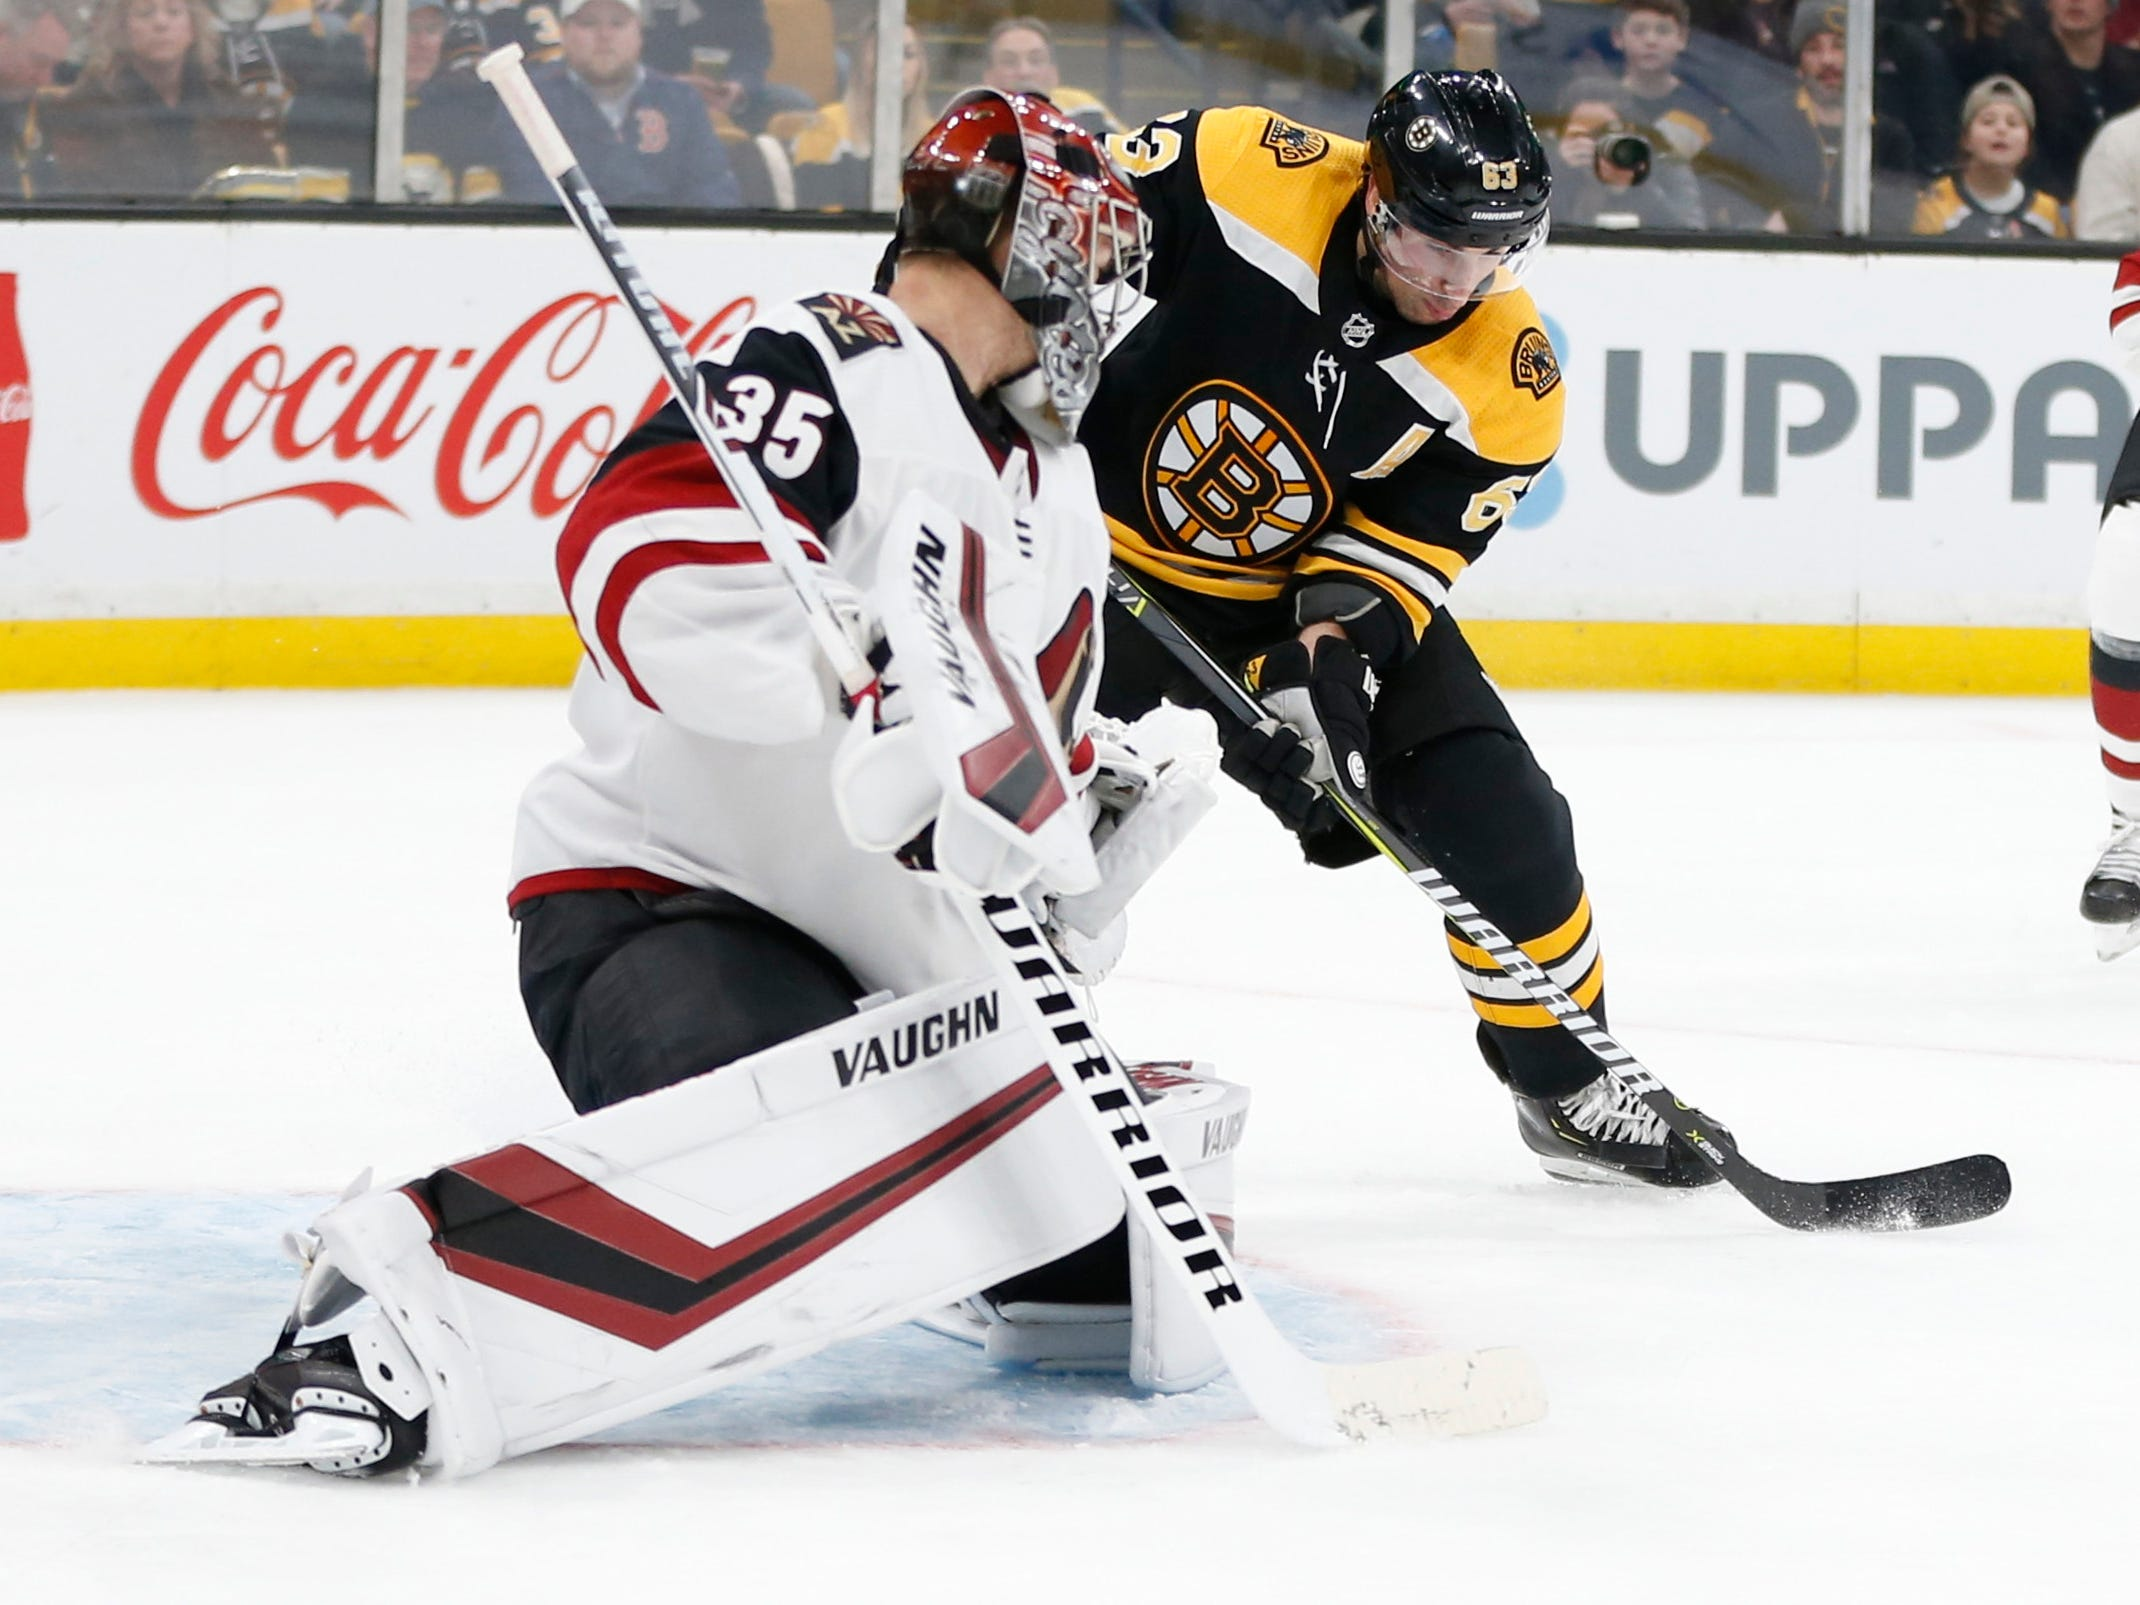 Dec 11, 2018; Boston, MA, USA; Boston Bruins left wing Brad Marchand (63) scores a goal on Arizona Coyotes goaltender Darcy Kuemper (35) during the second period at TD Garden. Mandatory Credit: Greg M. Cooper-USA TODAY Sports